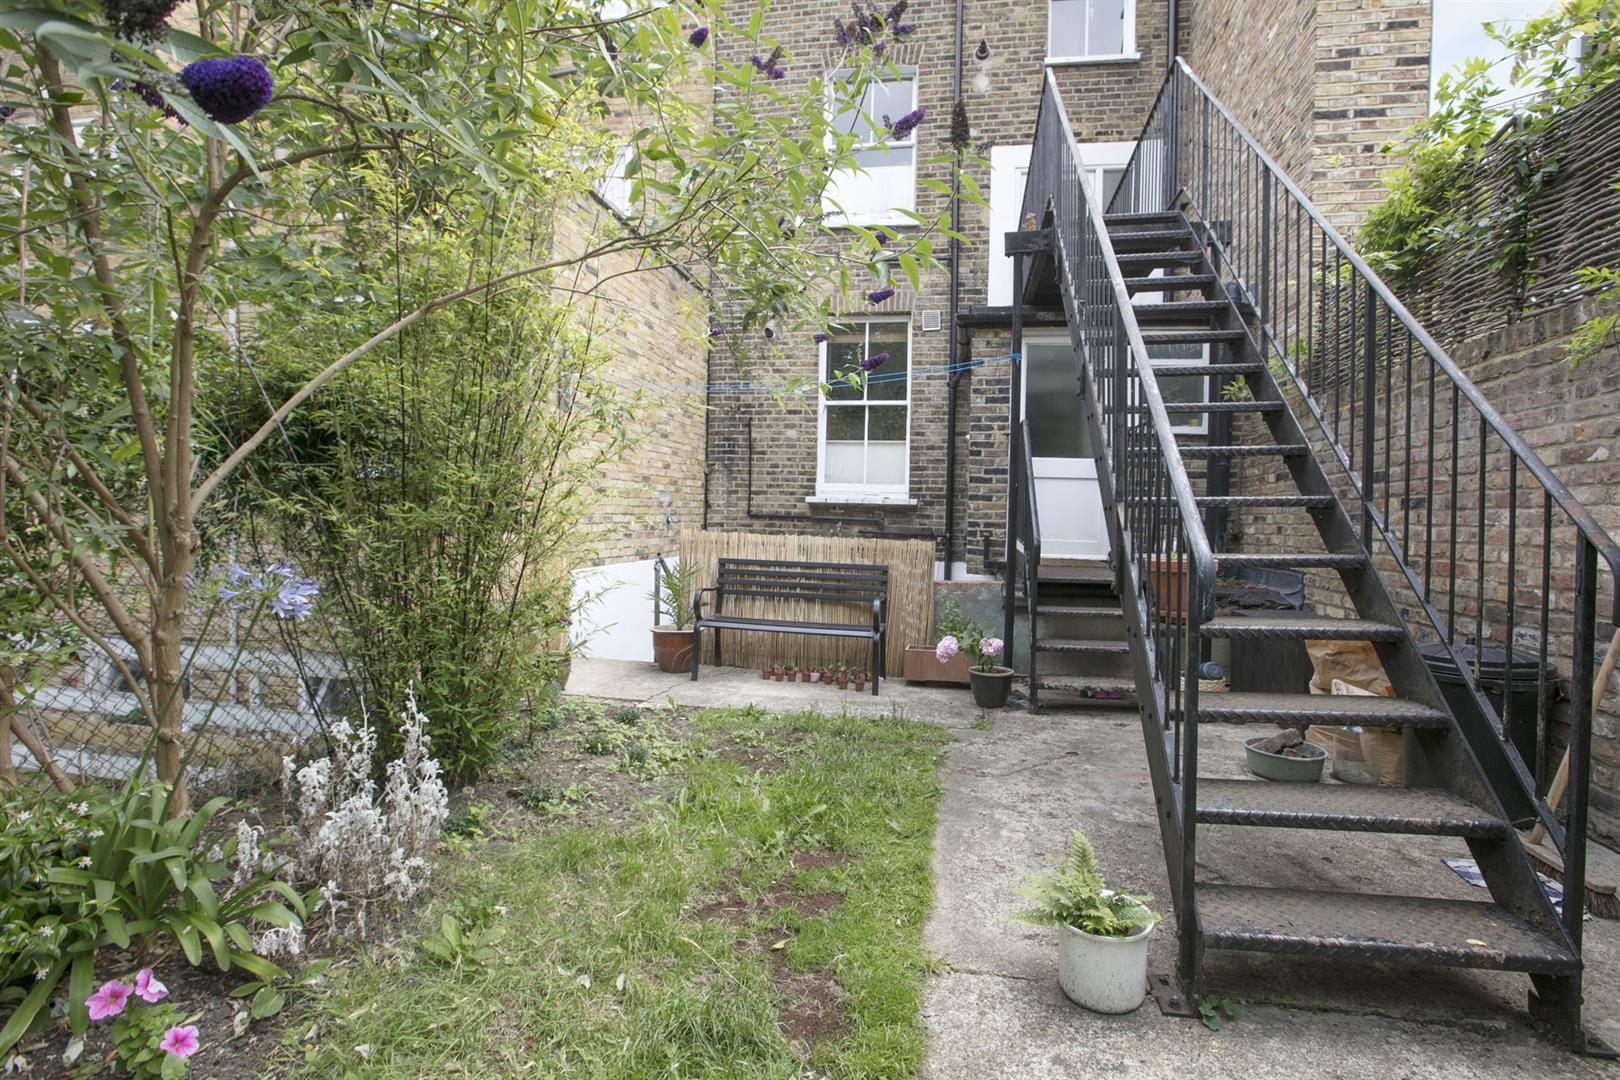 Flat - Conversion Sale Agreed in Talfourd Road, London 643 view11